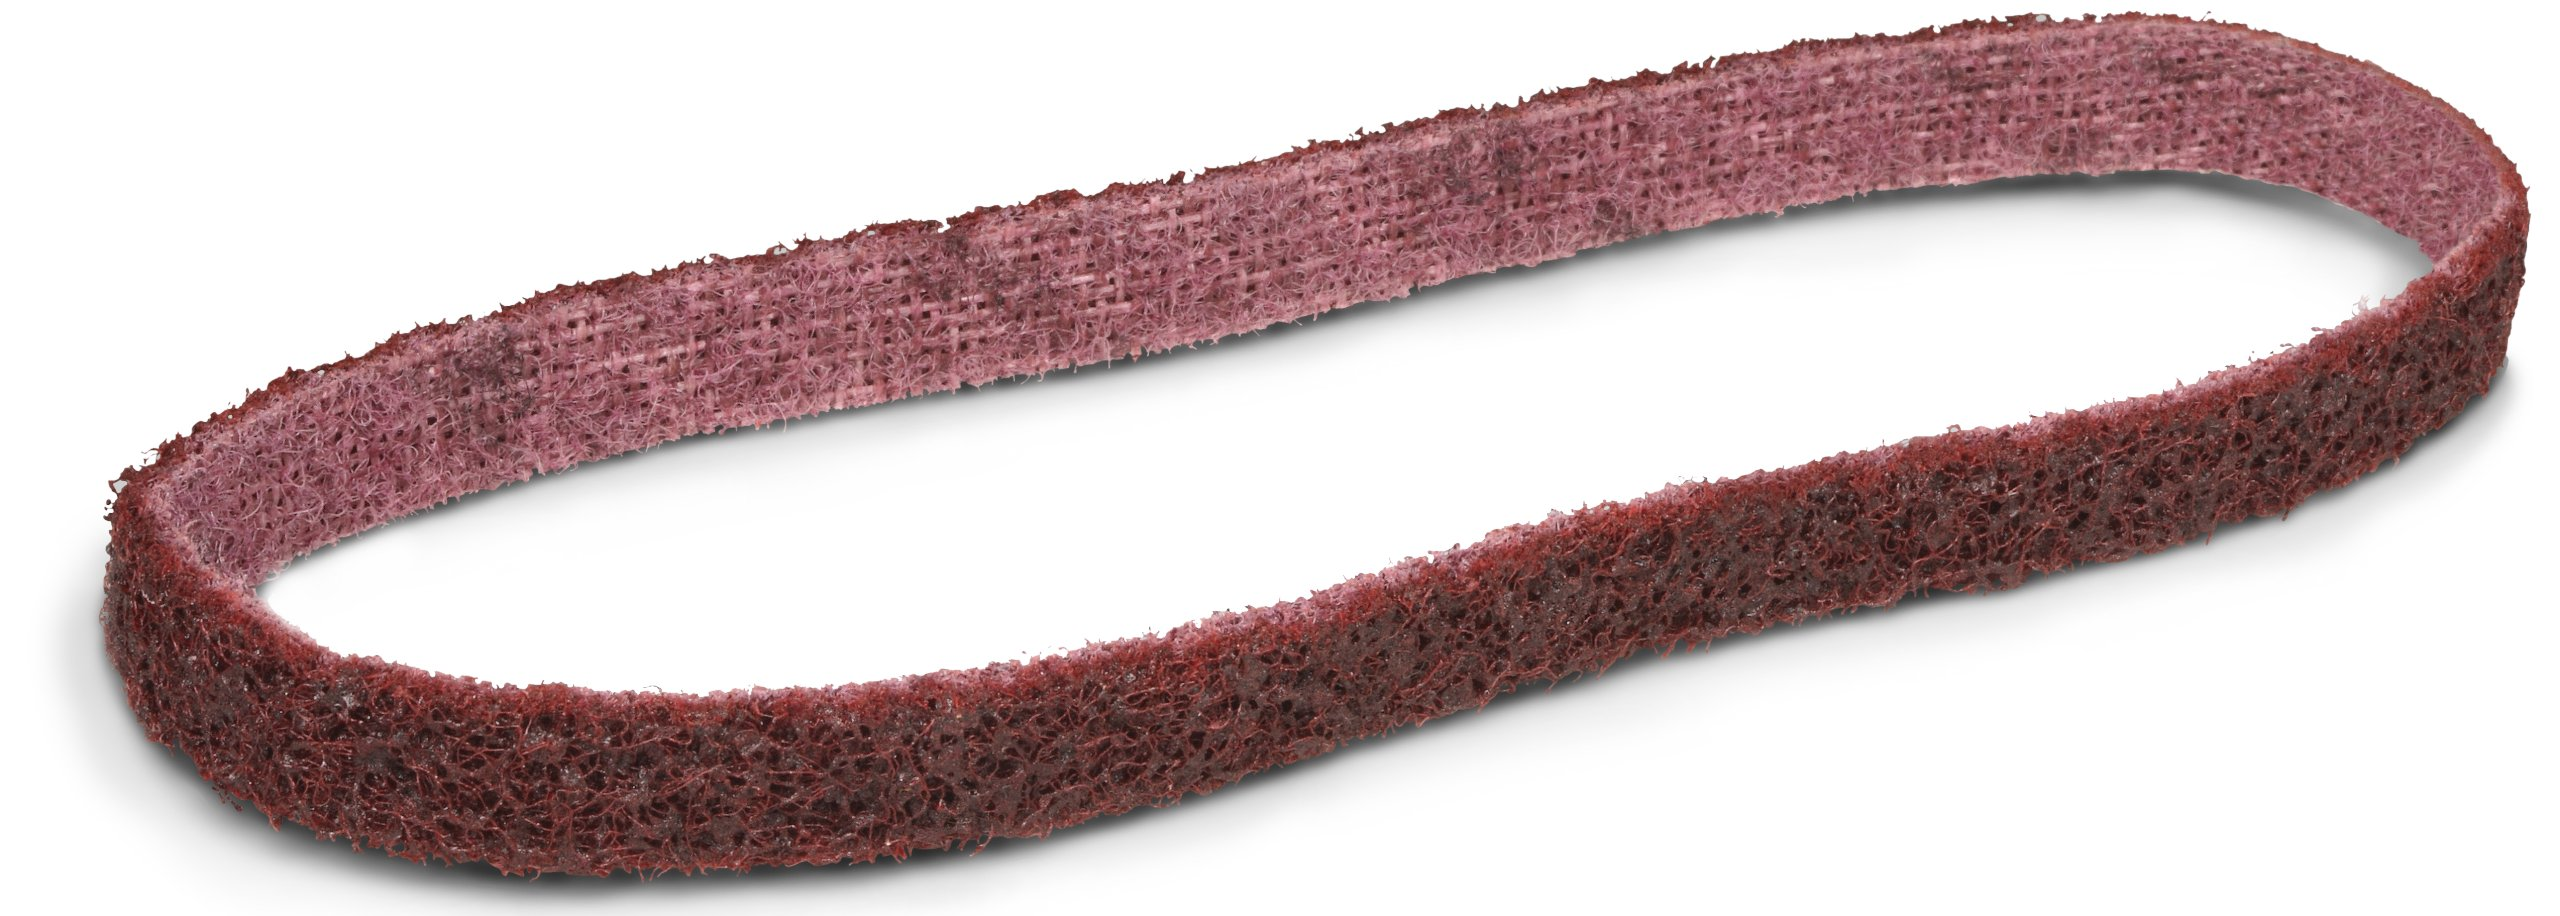 Scotch-Brite(TM) Surface Conditioning Belt, 1/2 Width x 18 Length, Medium, Maroon (Pack of 20)